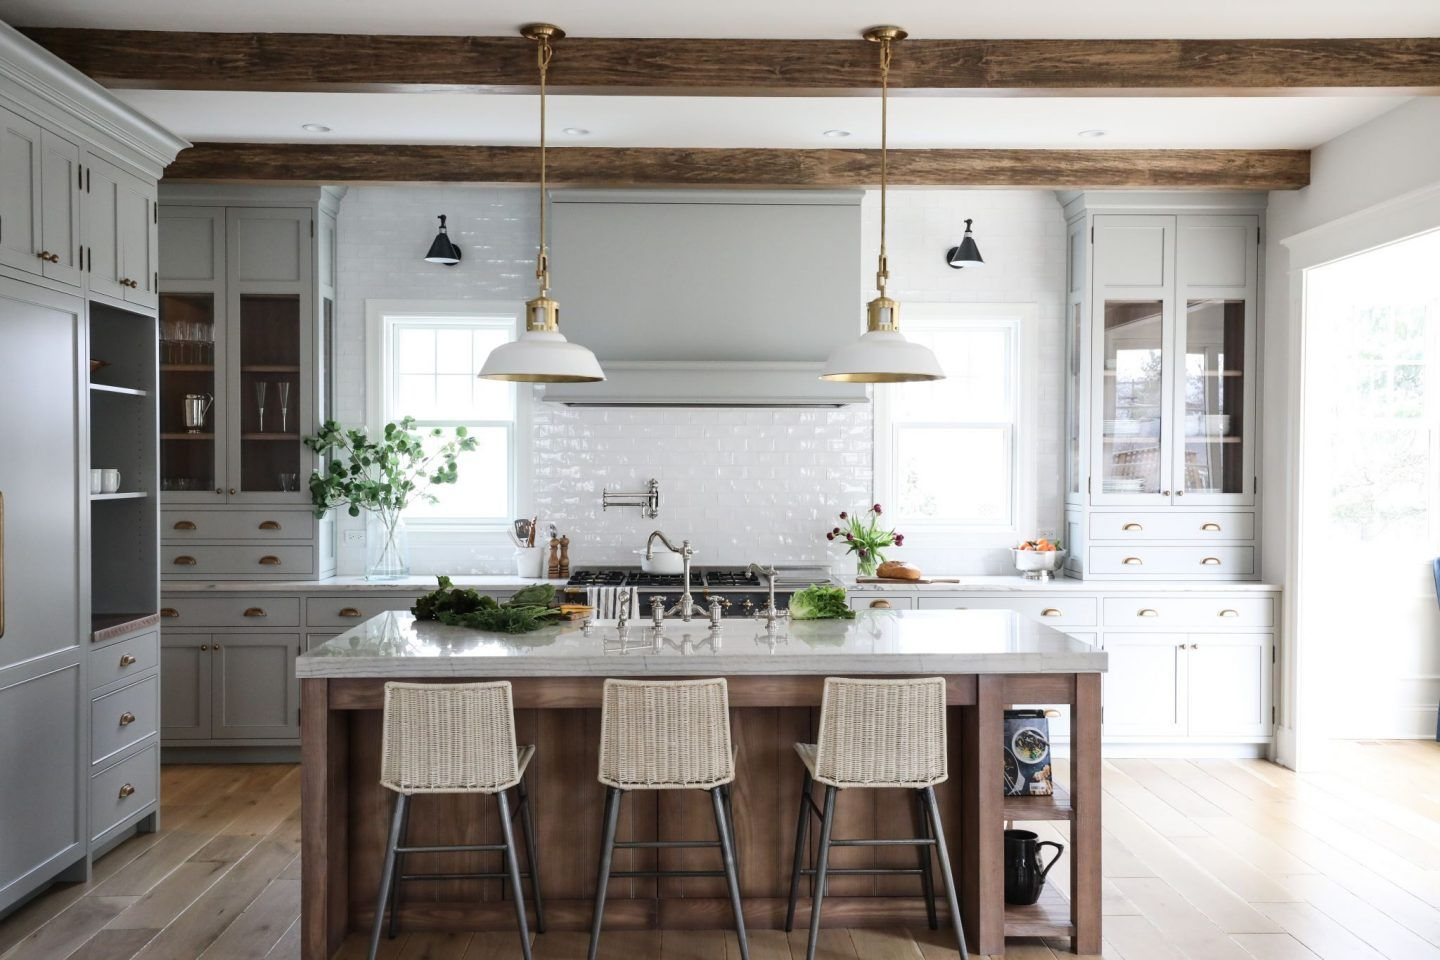 16 Simply Sophisticated Kitchen Design Ideas – Hello Lovely